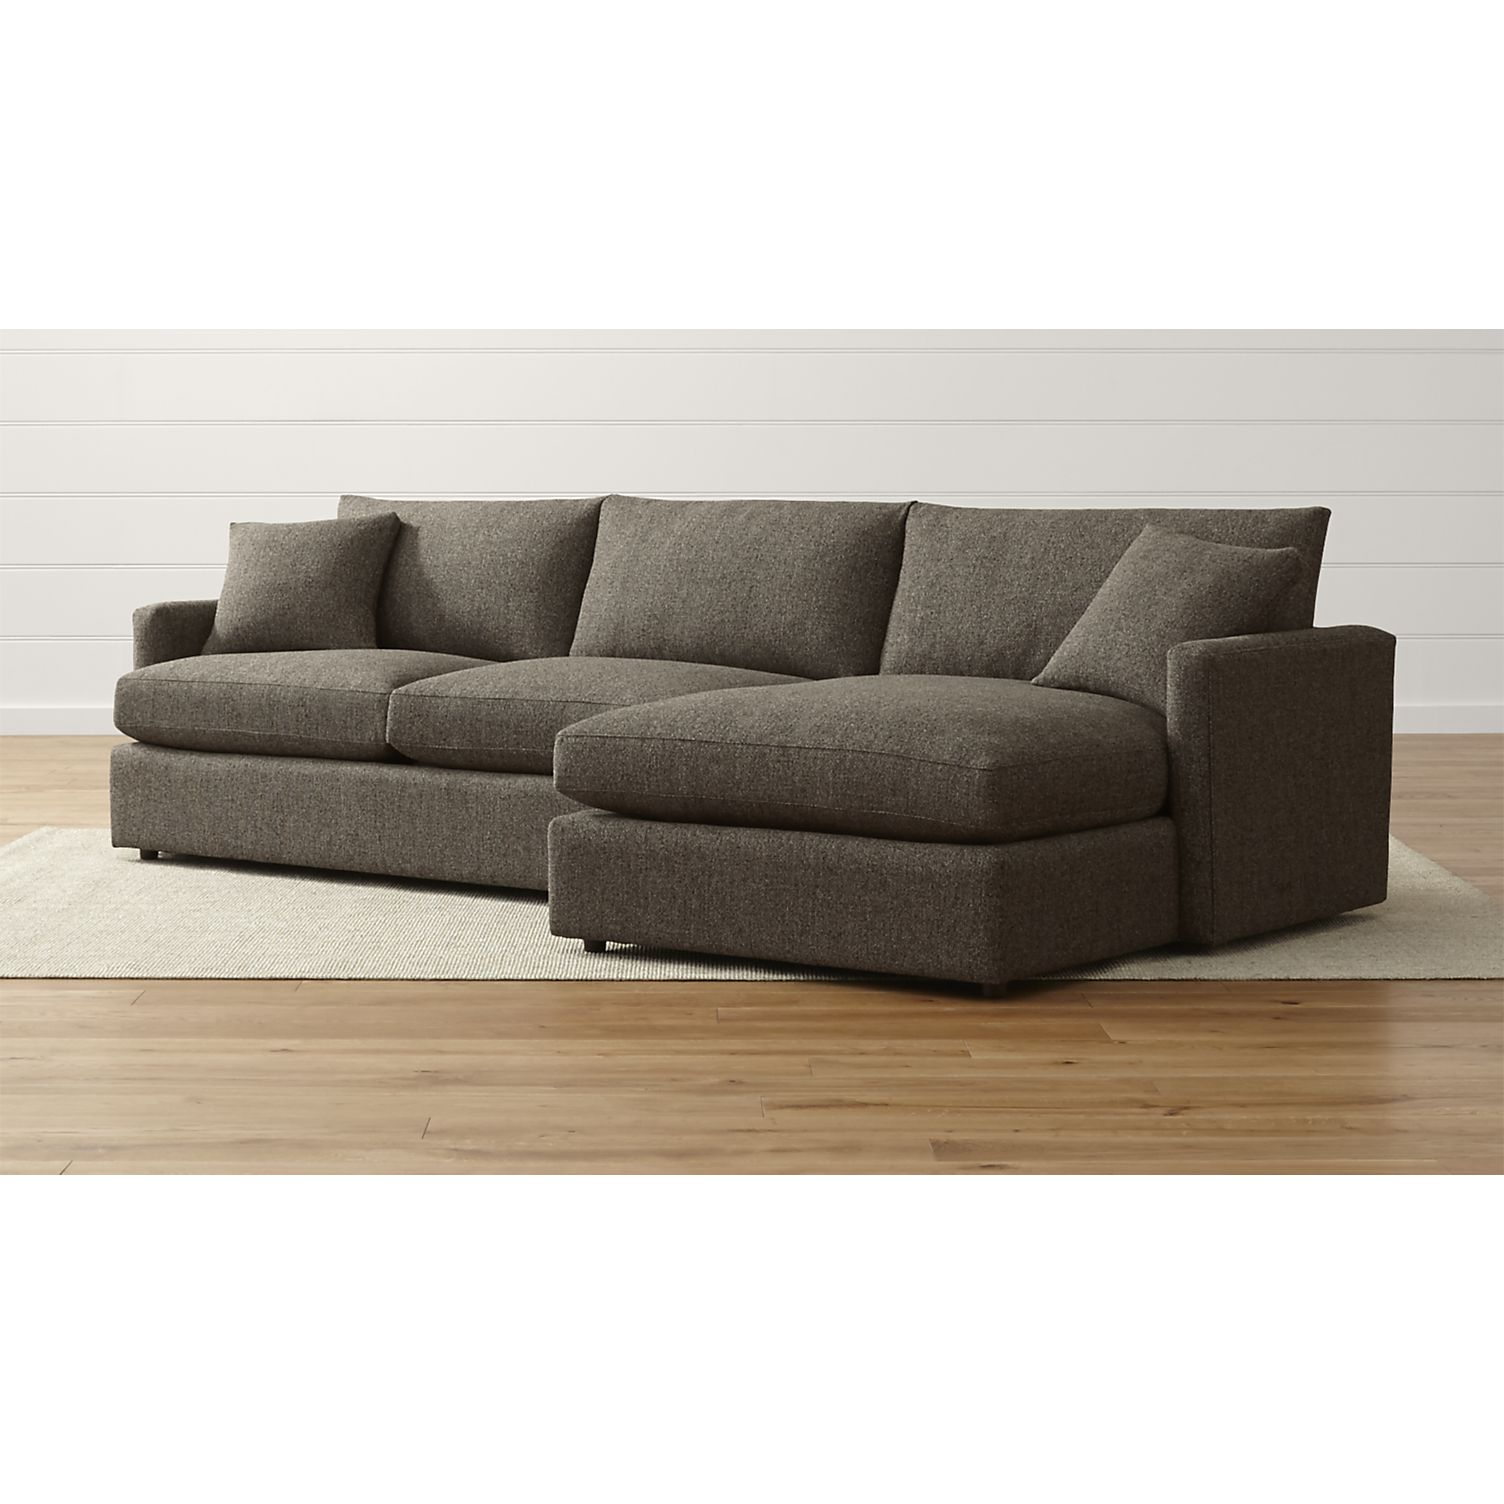 Crate and Barrel Couch | Crate and Barrel Sectional Couch | Crate and Barrel Sleeper Sofa